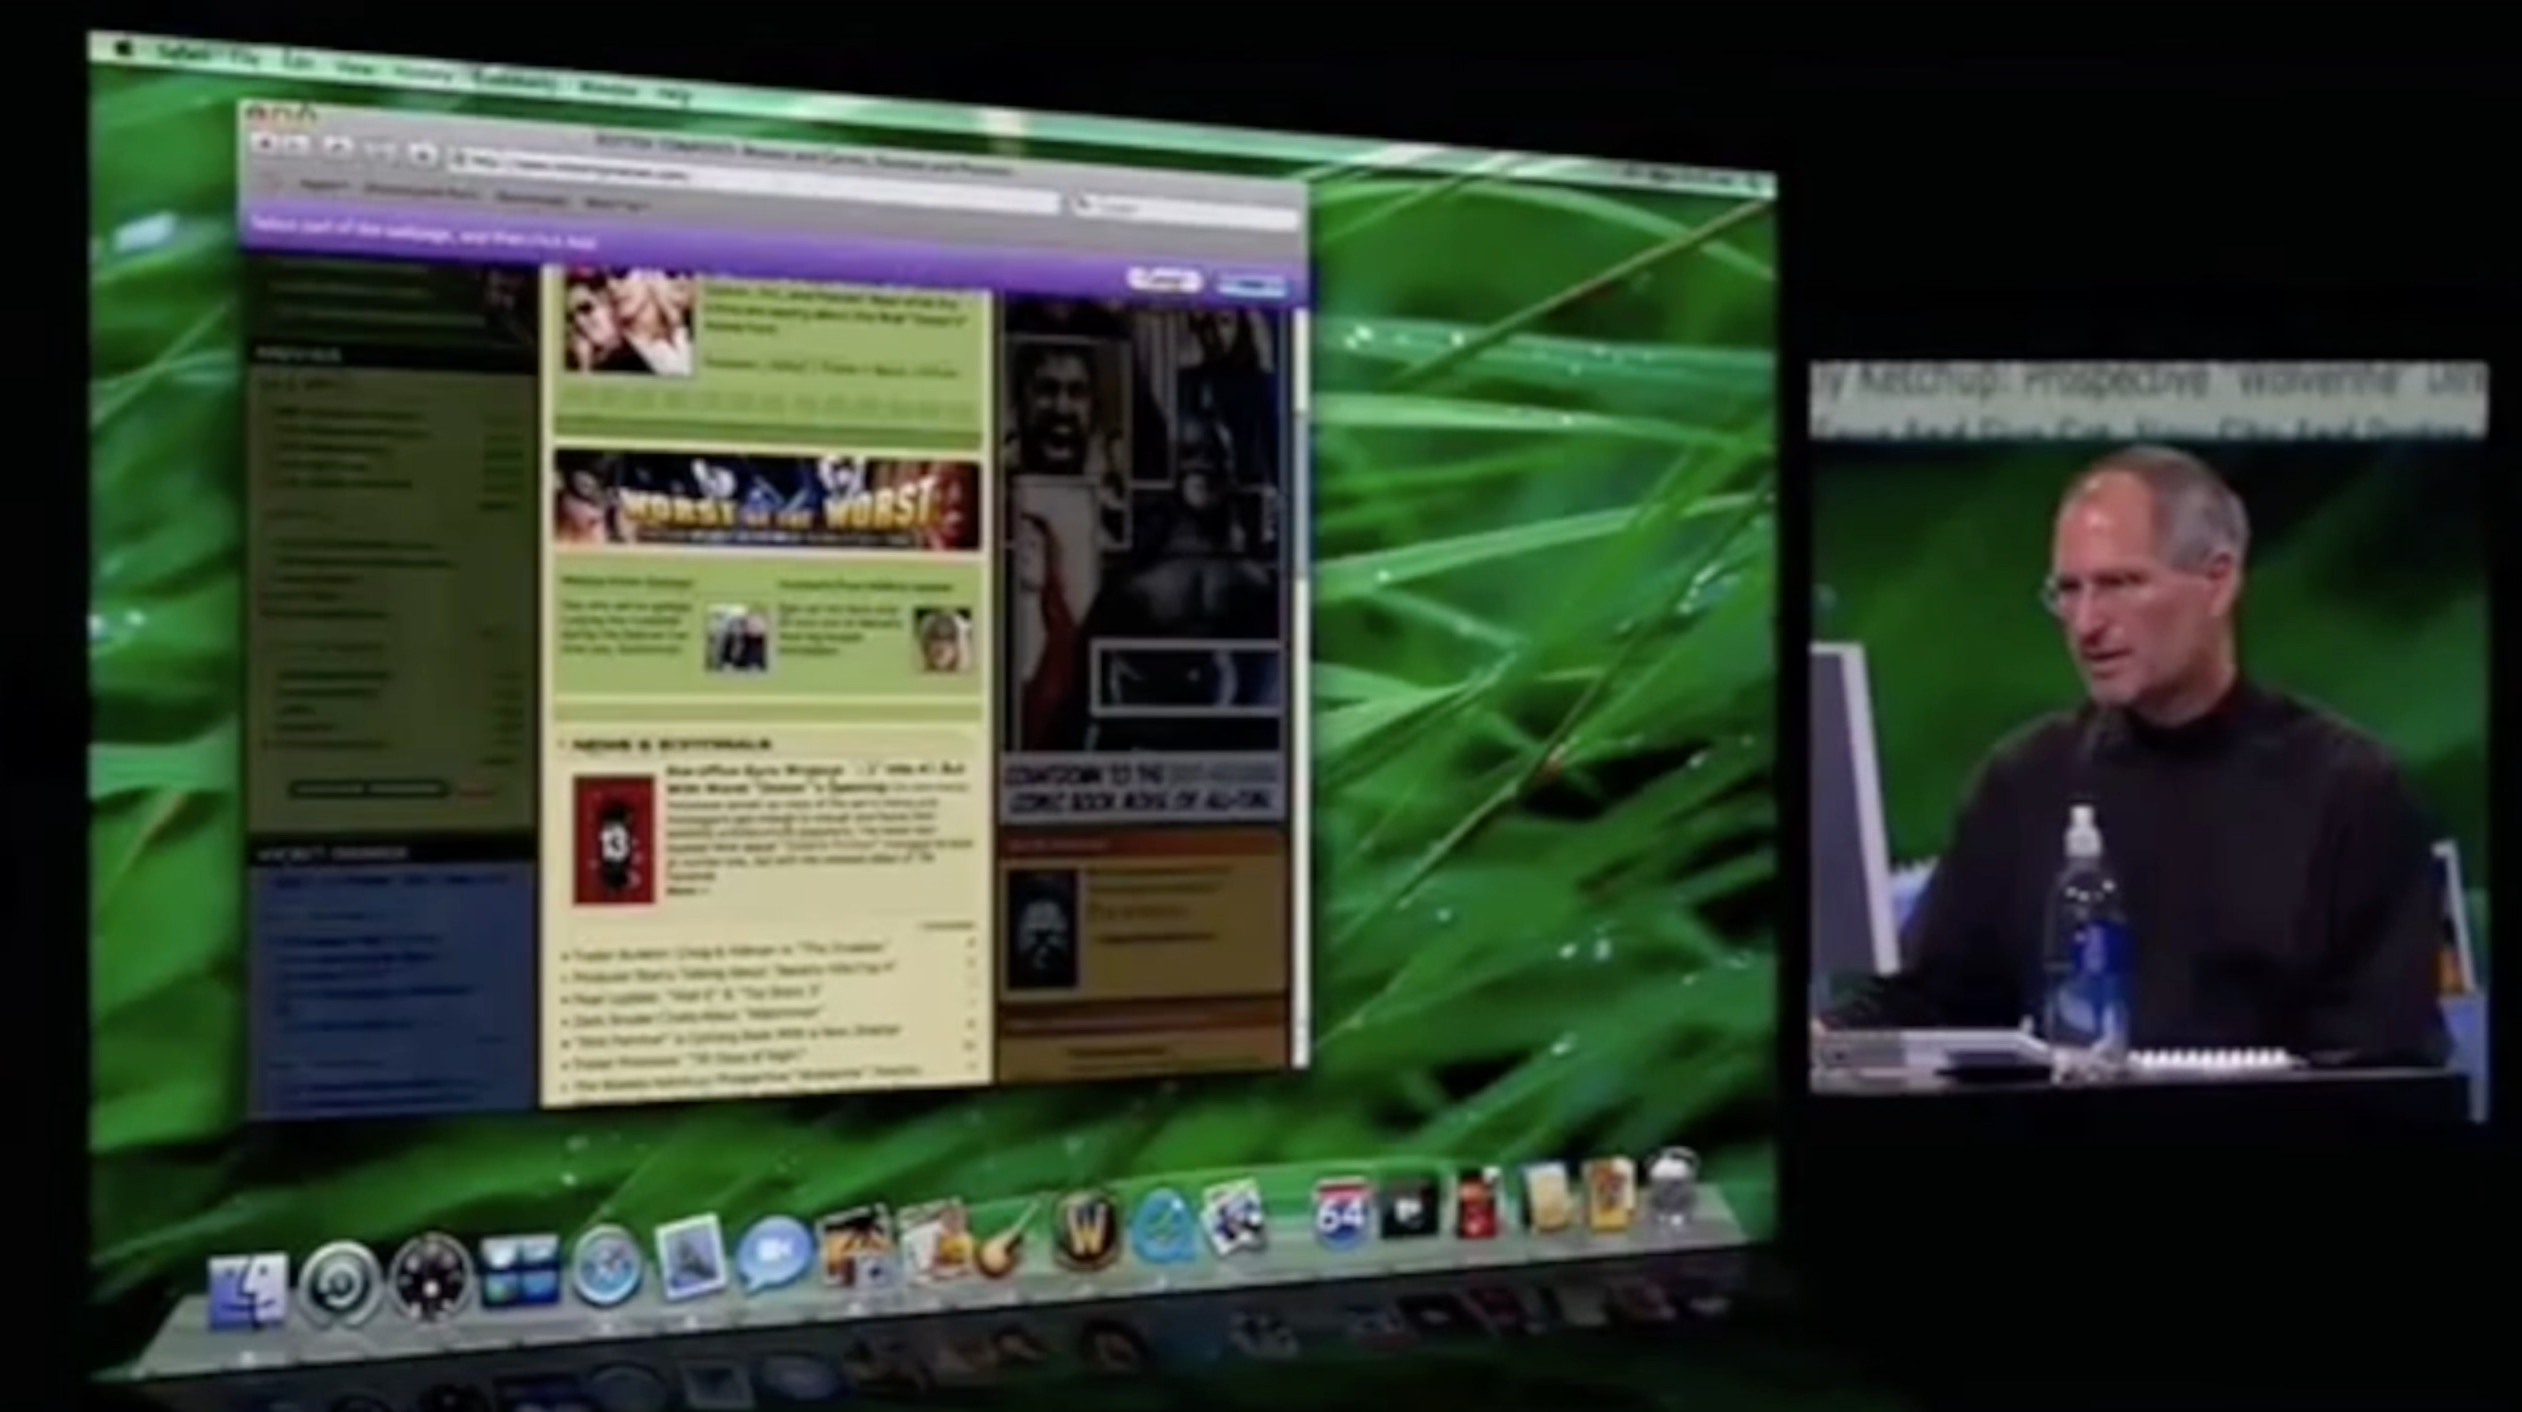 Three times that Steve Jobs demo'd Apple products on-stage with Rotten Tomatoes